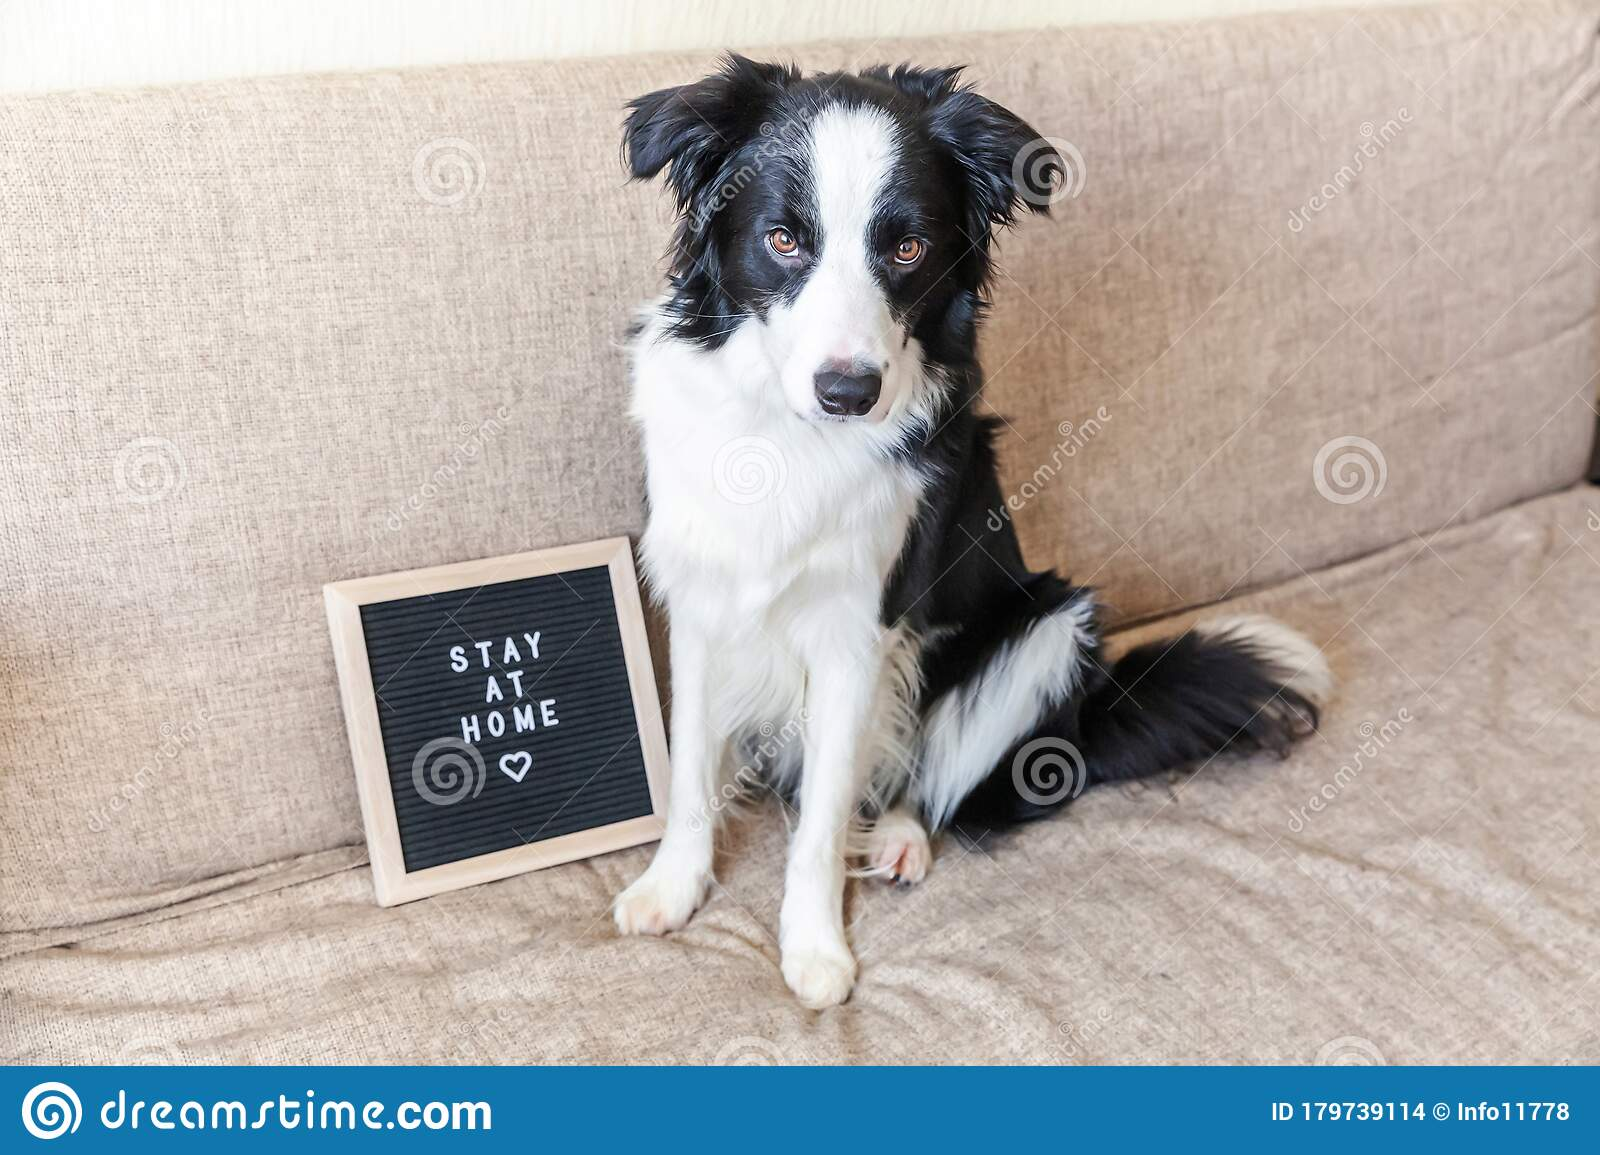 Stay Home Funny Portrait Of Cute Puppy Dog On Couch With Letter Board Inscription Stay At Home Word New Lovely Member Of Family Stock Photo Image Of Animal Floor 179739114